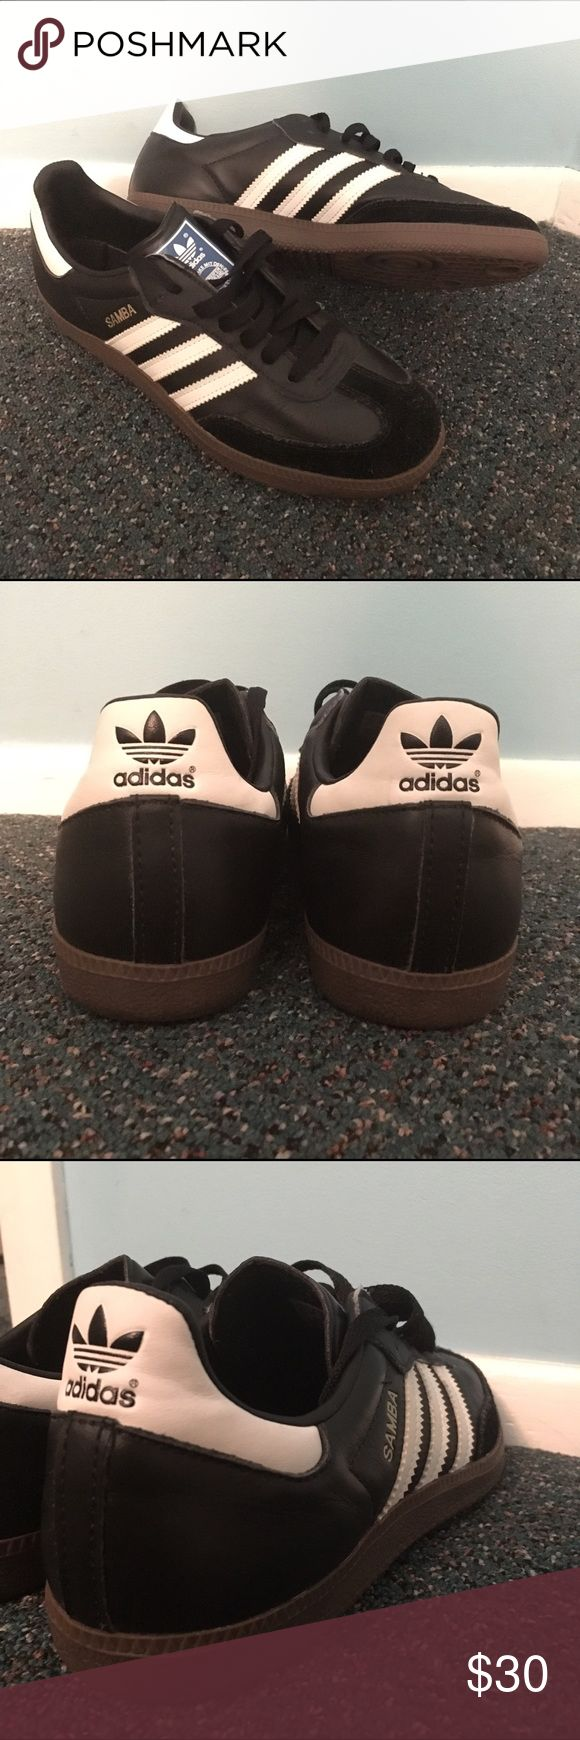 Adidas Samba Super cute, super comfy, very new, Black & White Adidas Samba sneakers. Only worn a handful of times ! Kept them stored away in my closet because I own too many ! Adidas Shoes Athletic Shoes